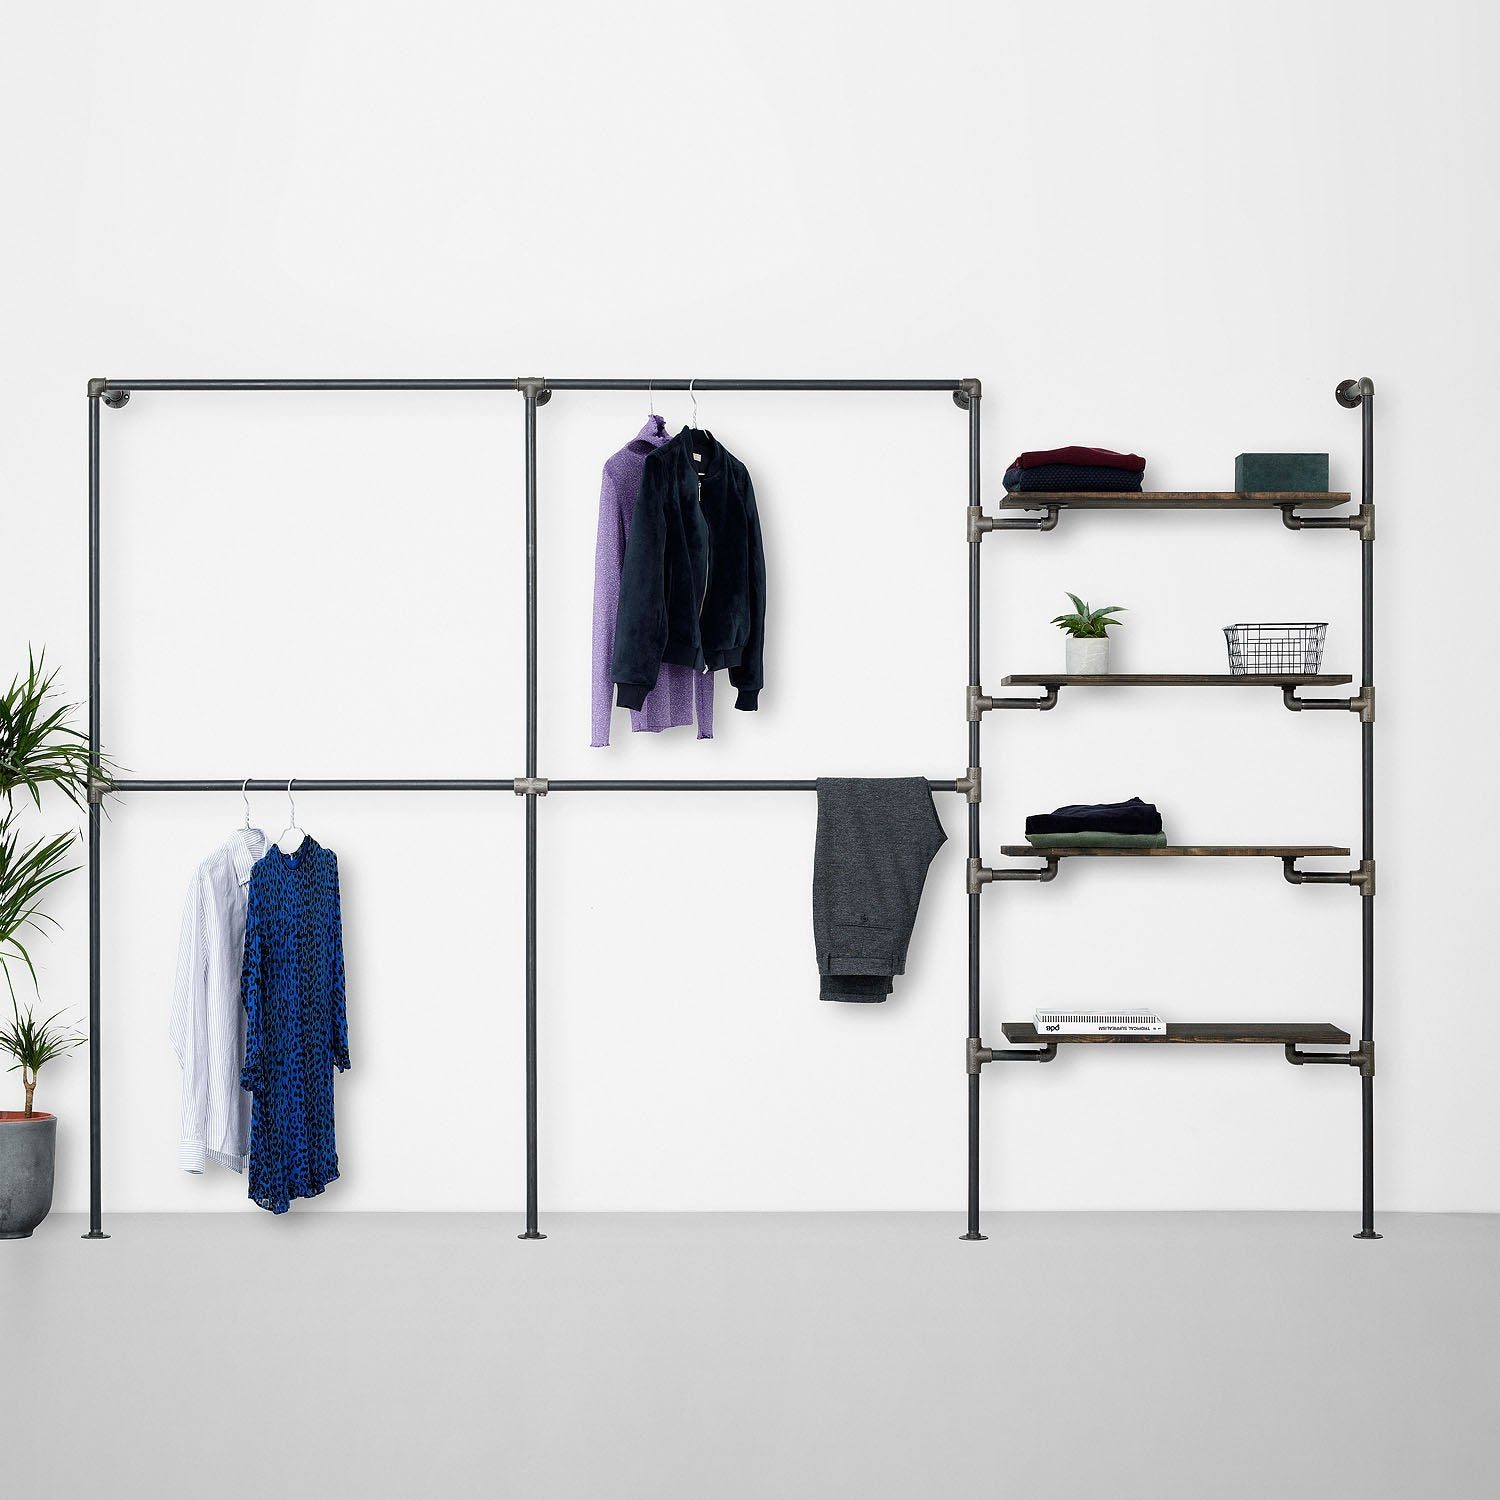 The Walk-In 3 row wardrobe system - 2 rails / 2 rails / 4 shelves